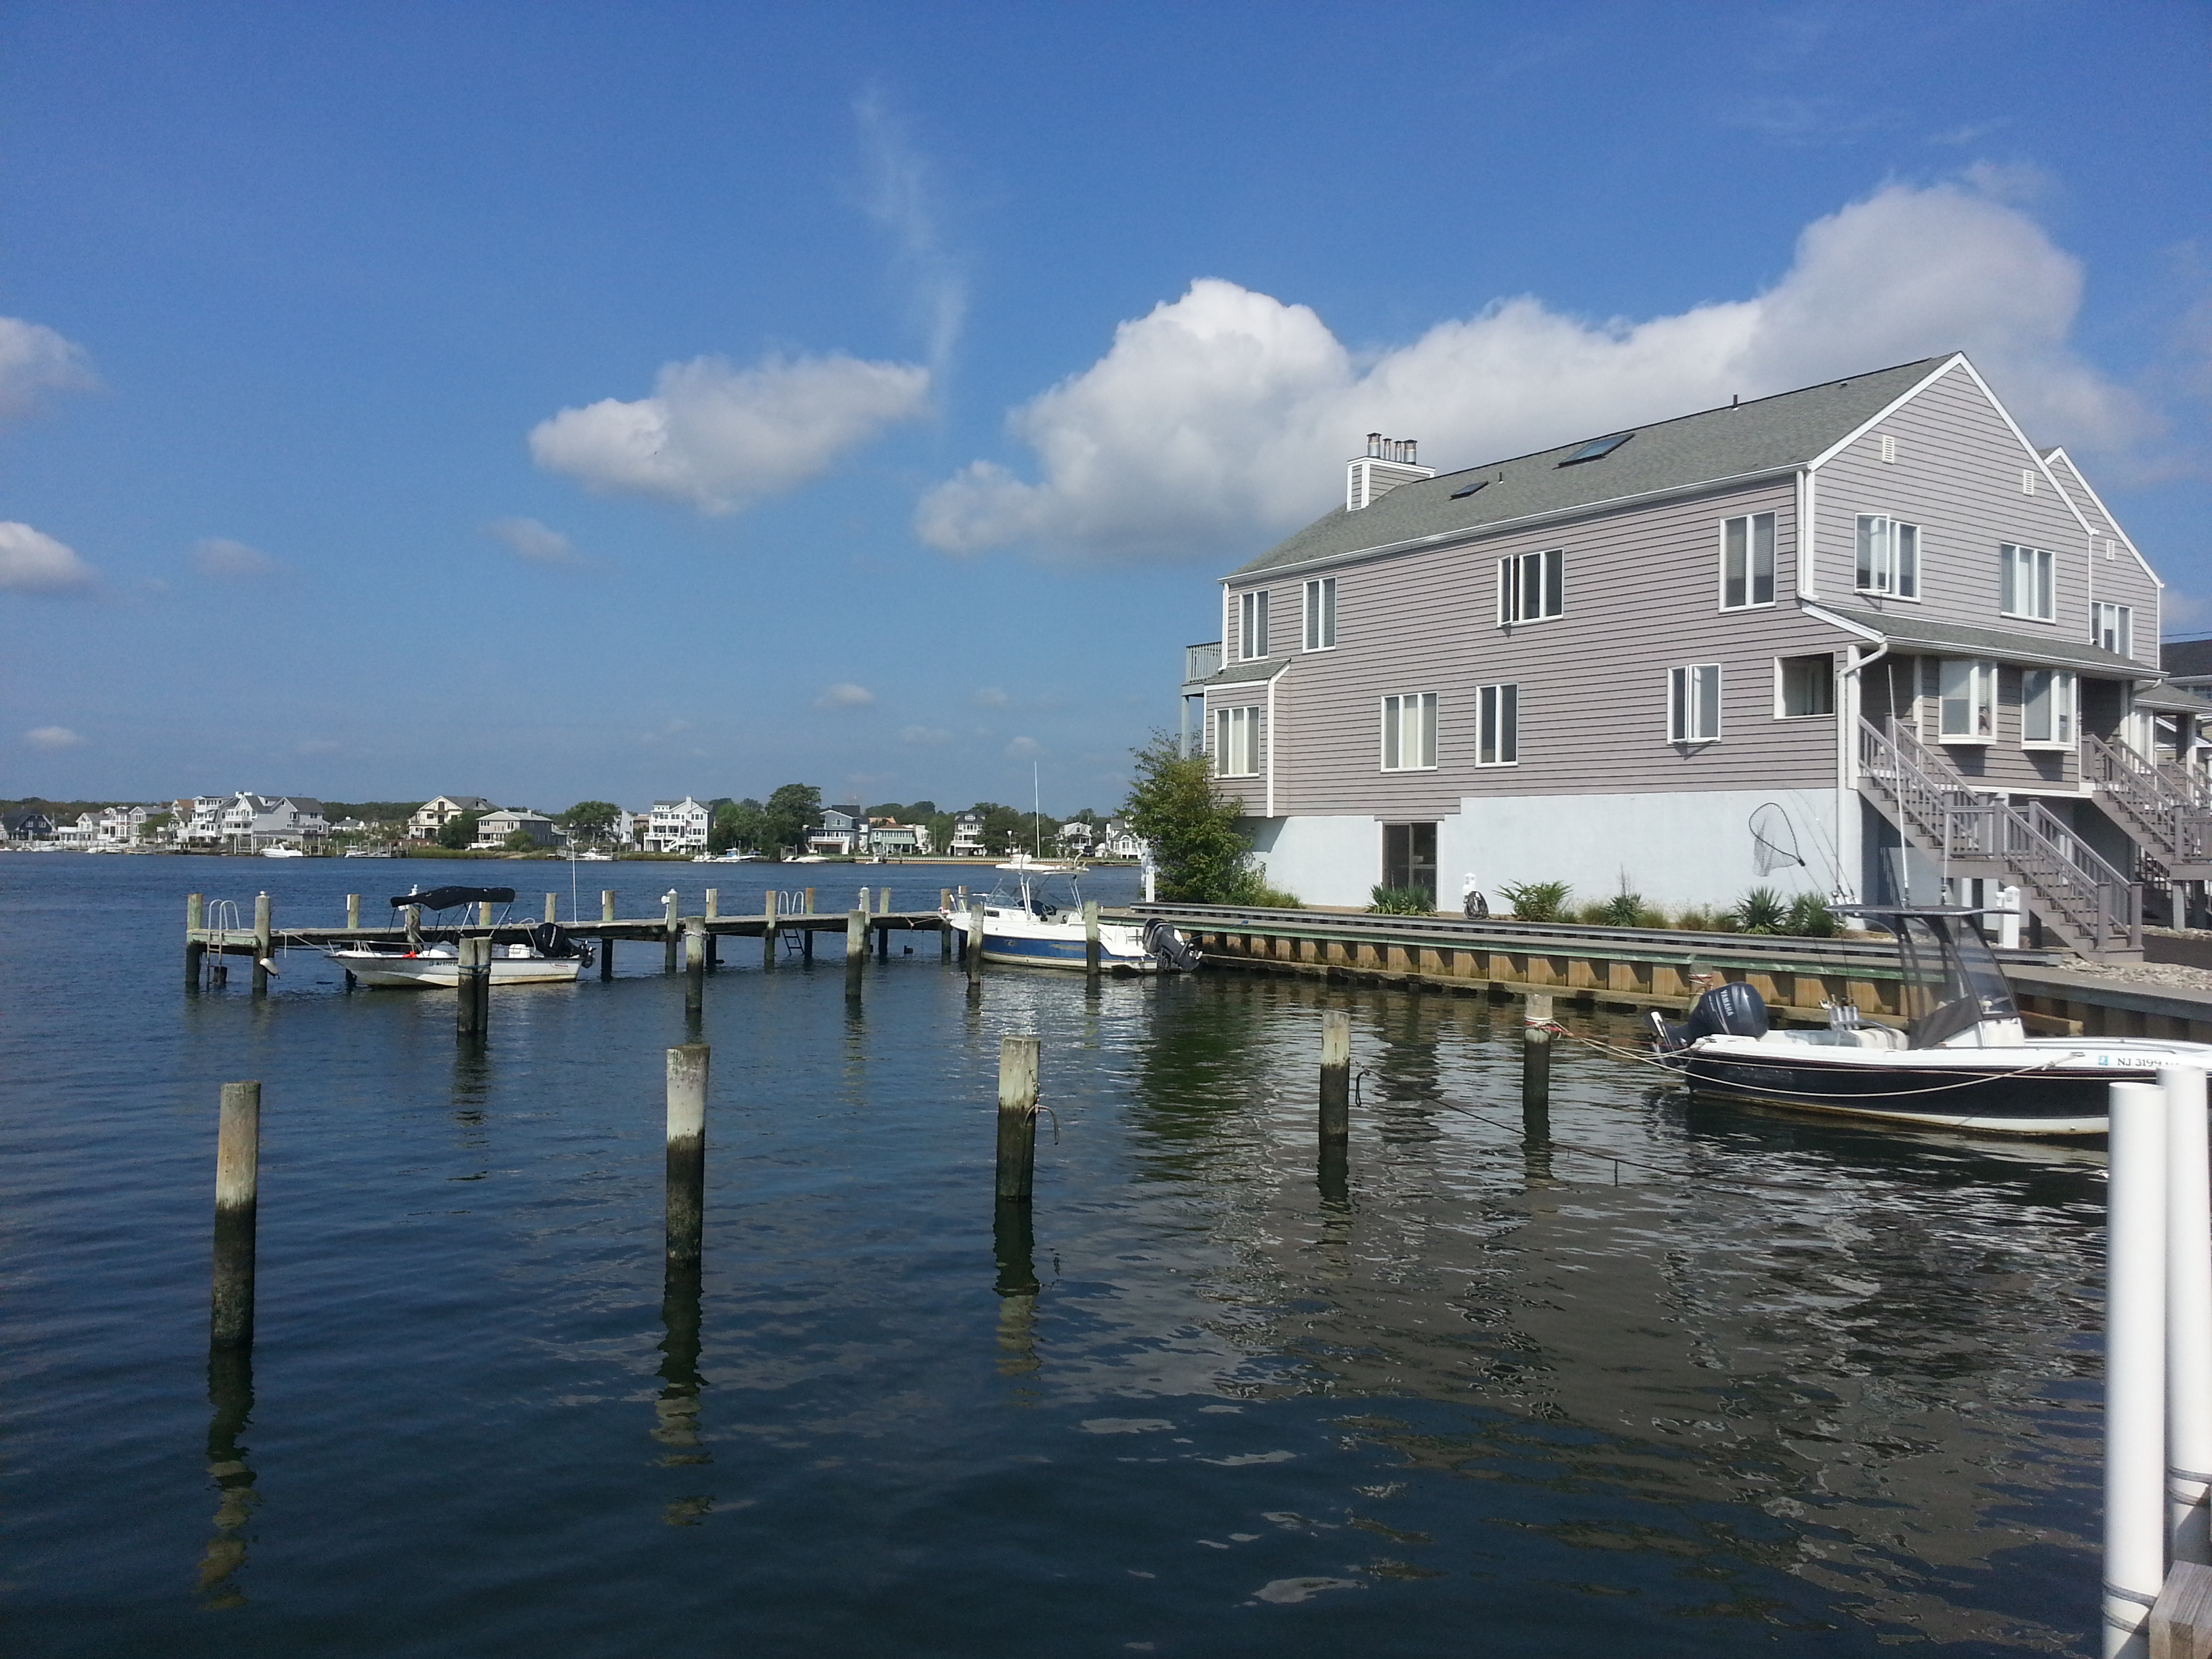 The Waterways, located on the Shrewsbury River, has a dock for residents' boats.